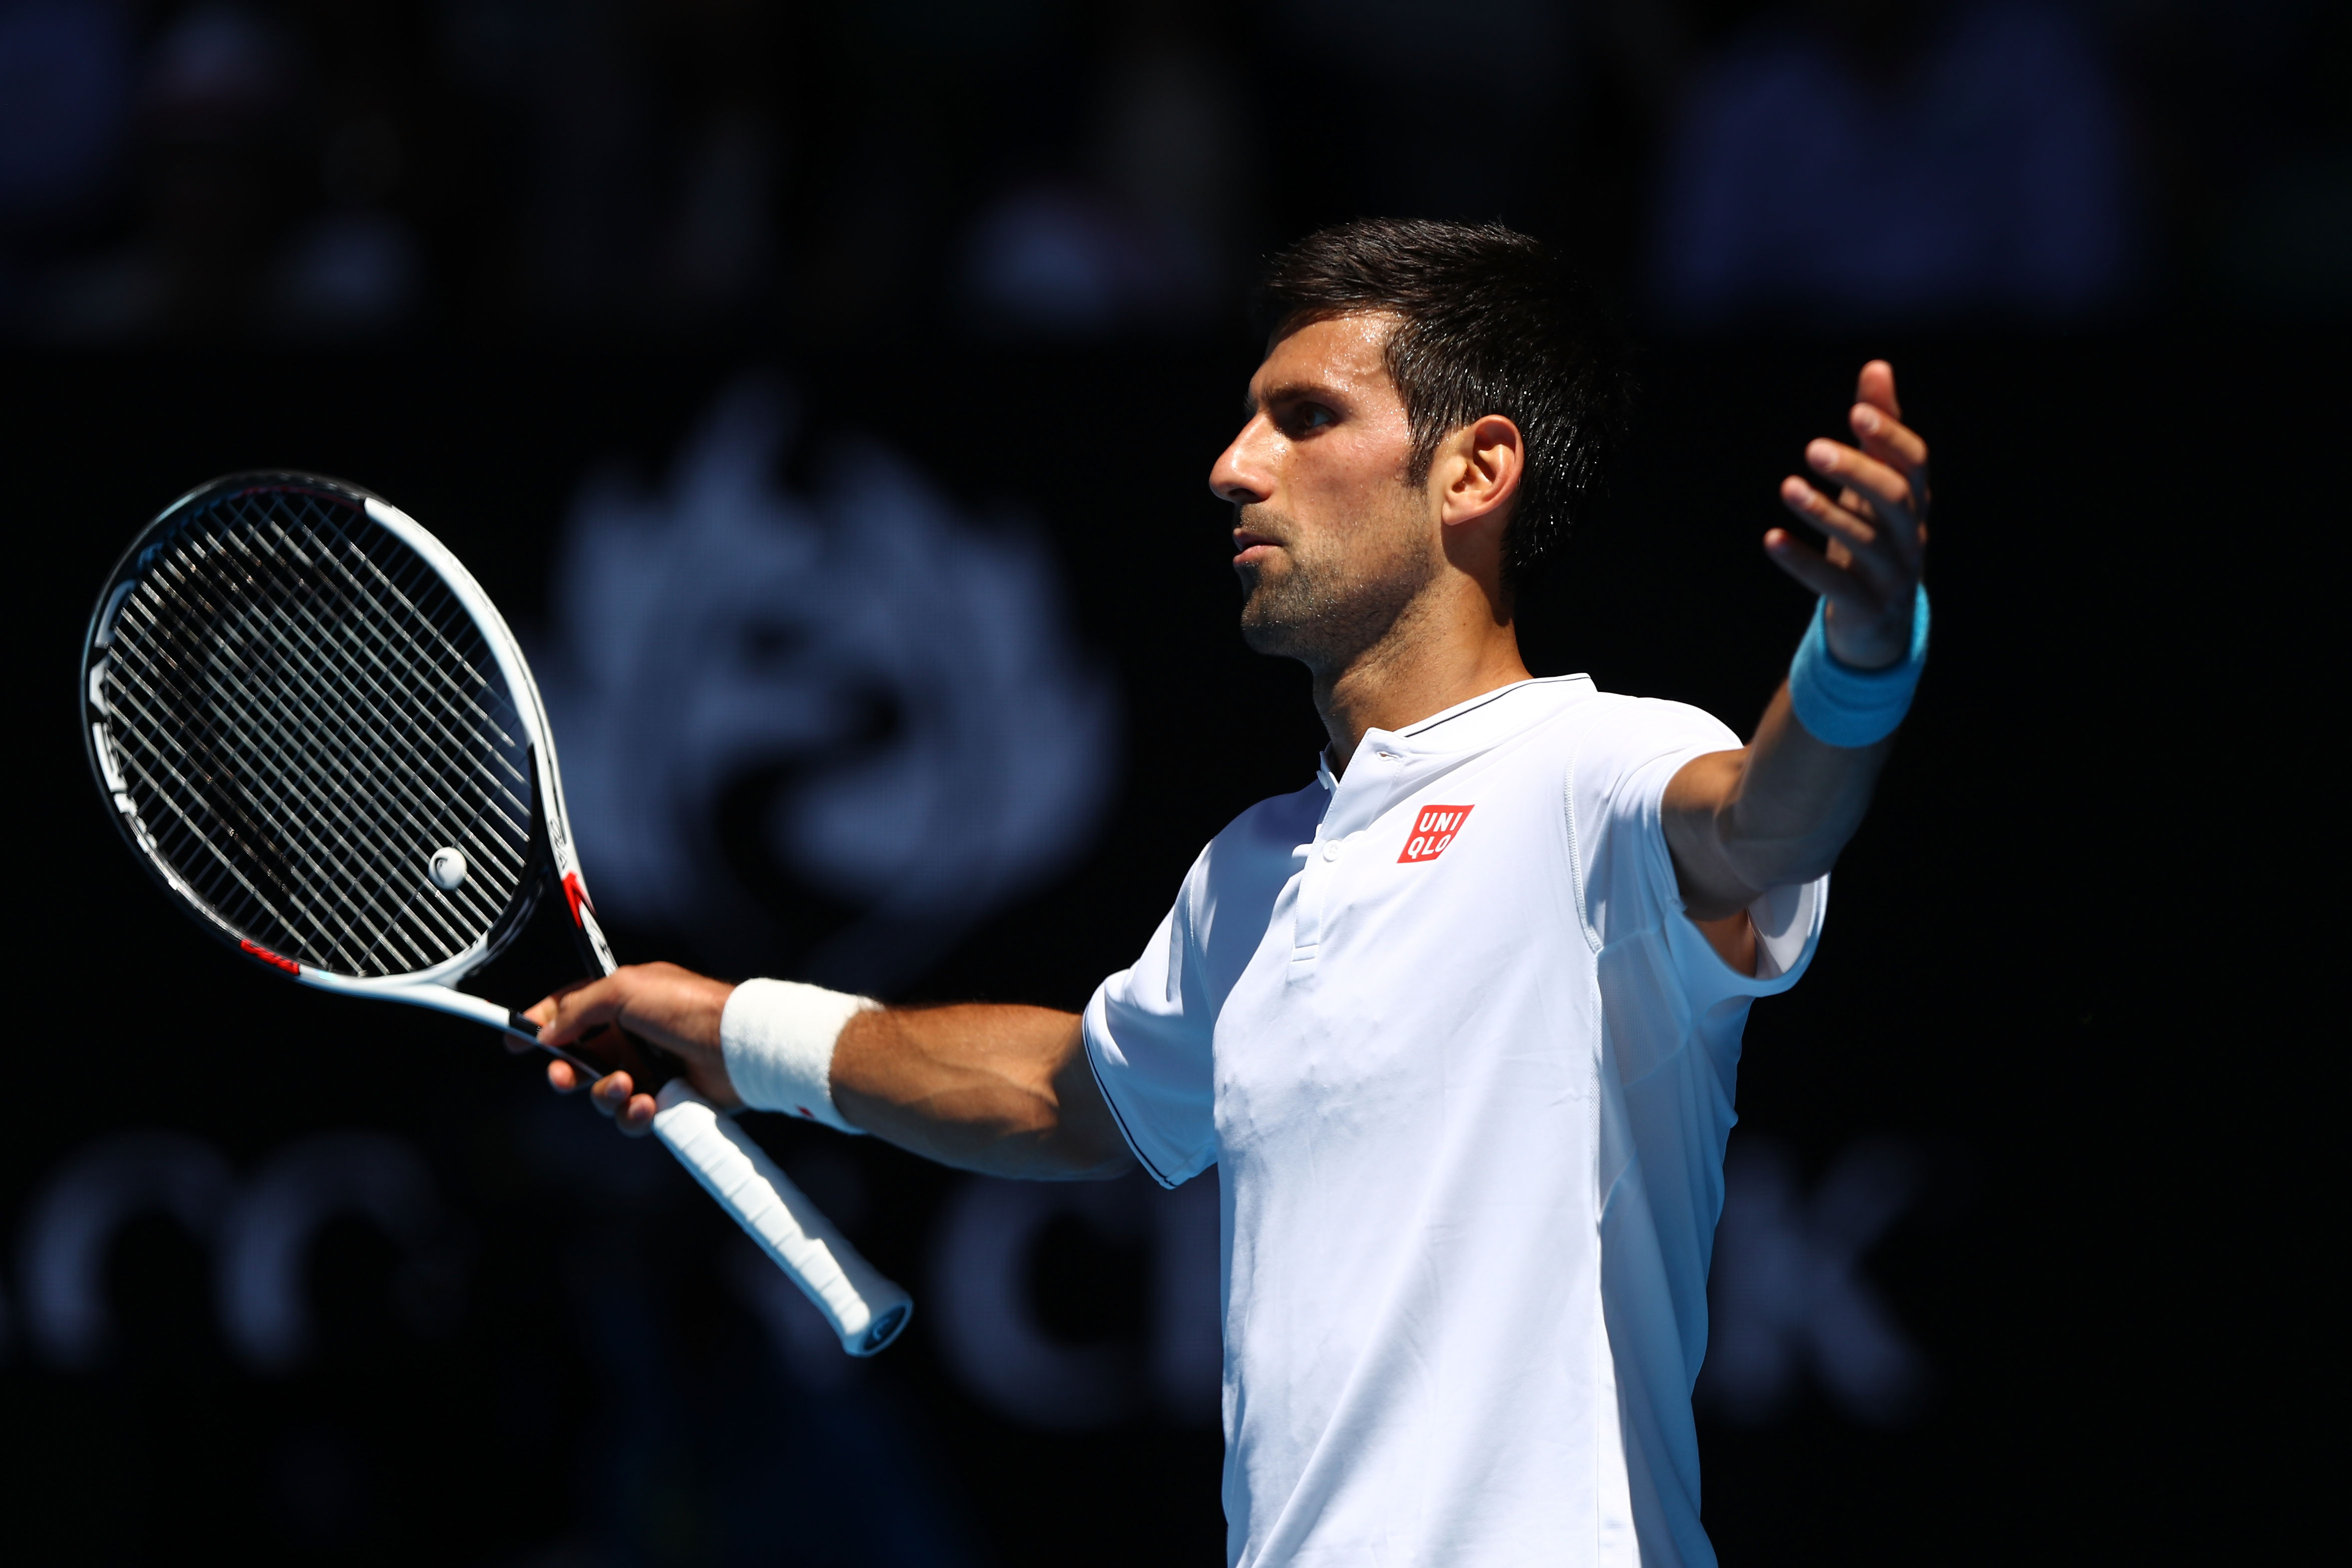 MELBOURNE, AUSTRALIA - JANUARY 19:  Novak Djokovic of Serbia reacts in his second round match against Denis Istomin of Uzbekistan on day four of the 2017 Australian Open at Melbourne Park on January 19, 2017 in Melbourne, Australia.  (Photo by Ryan Pierse/Getty Images)